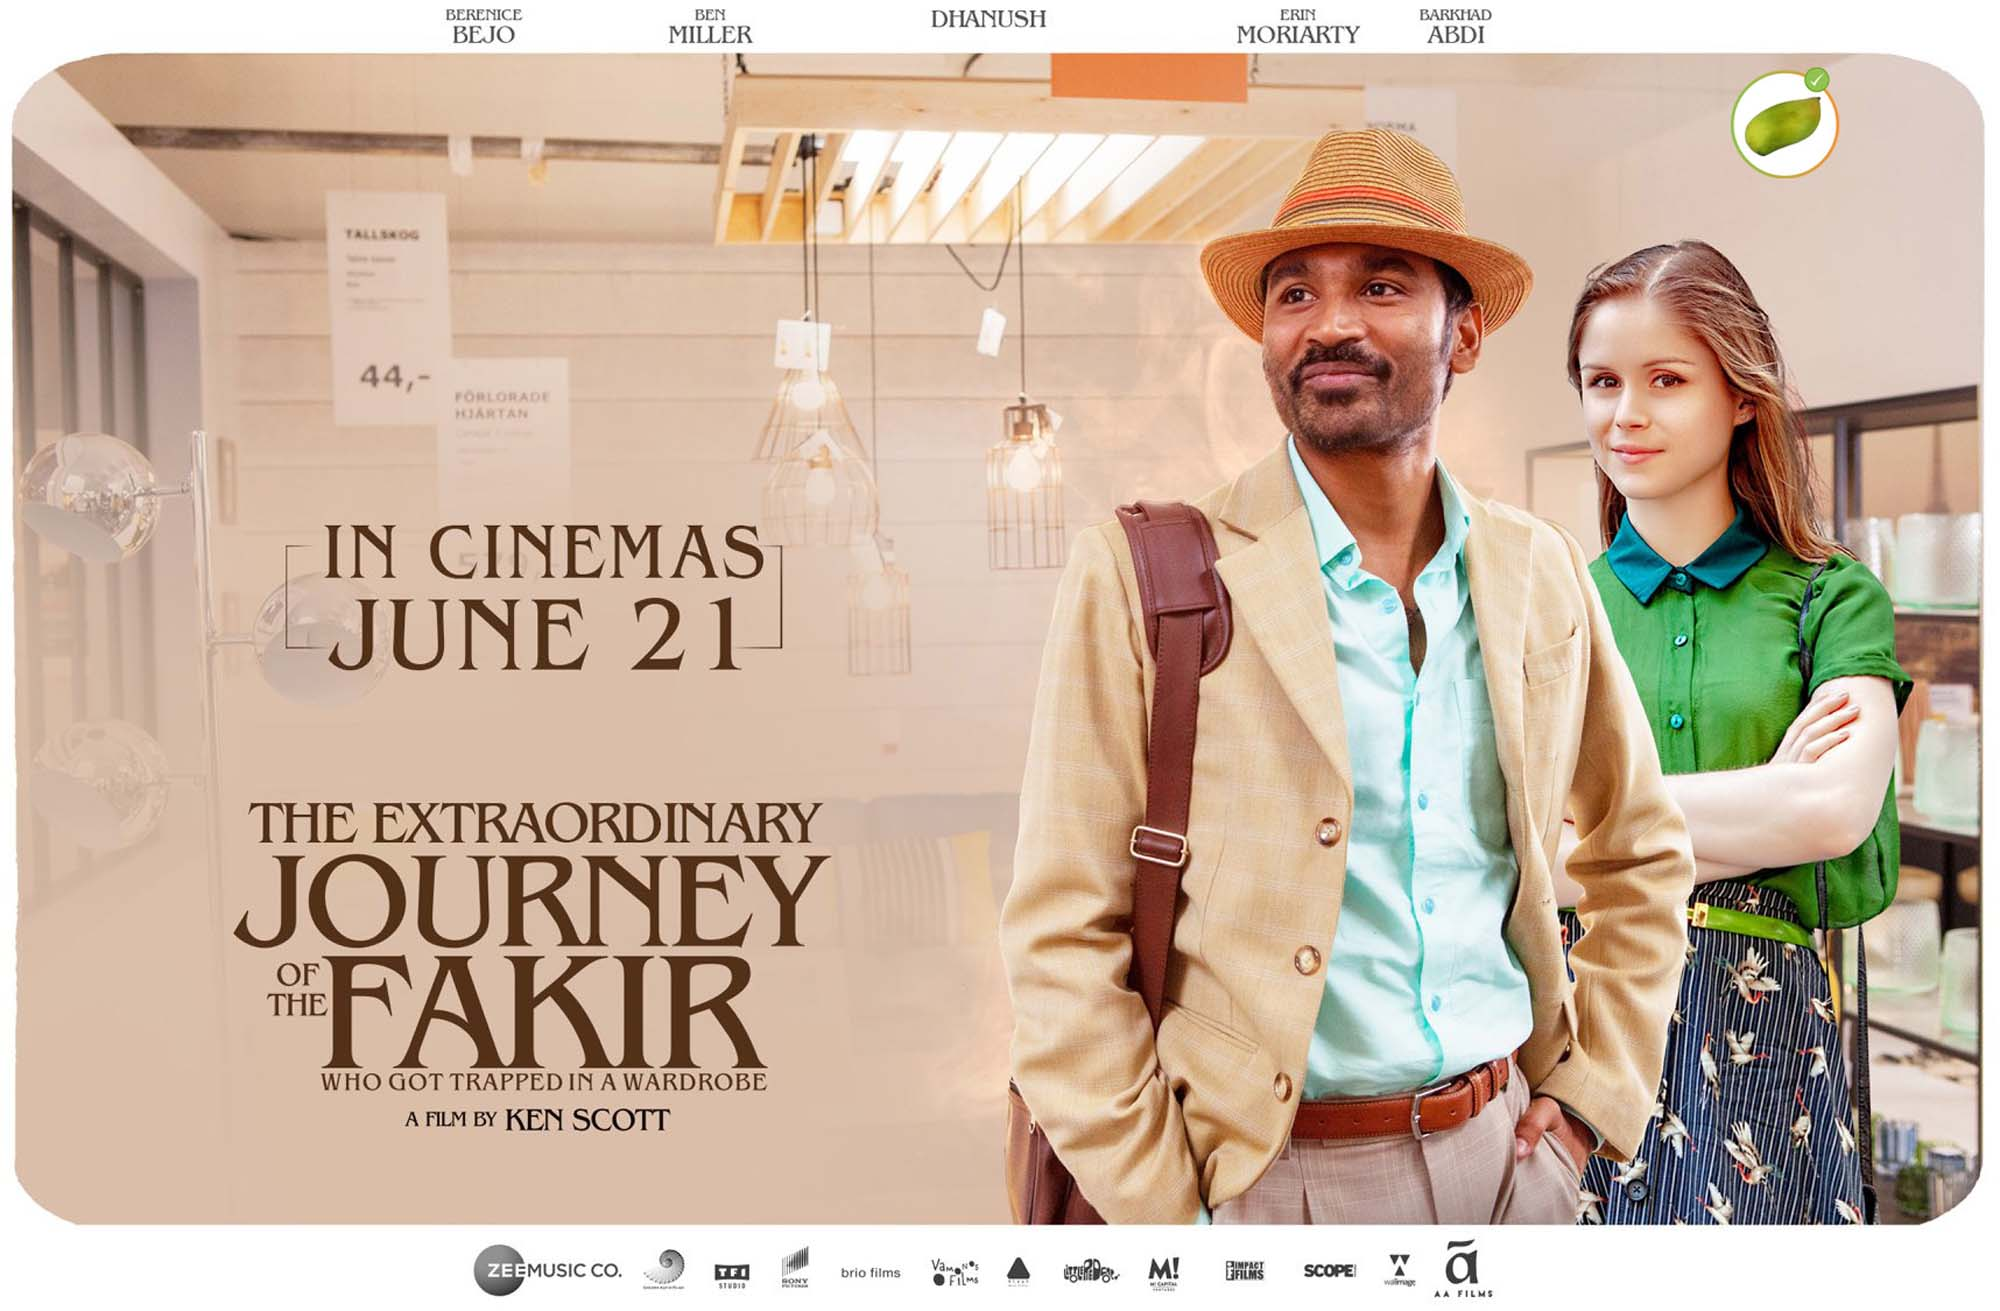 The Extraordinary Journey of the Fakir is a 2019 English comedy-adventure film directed by Ken Scott and starring Dhanush